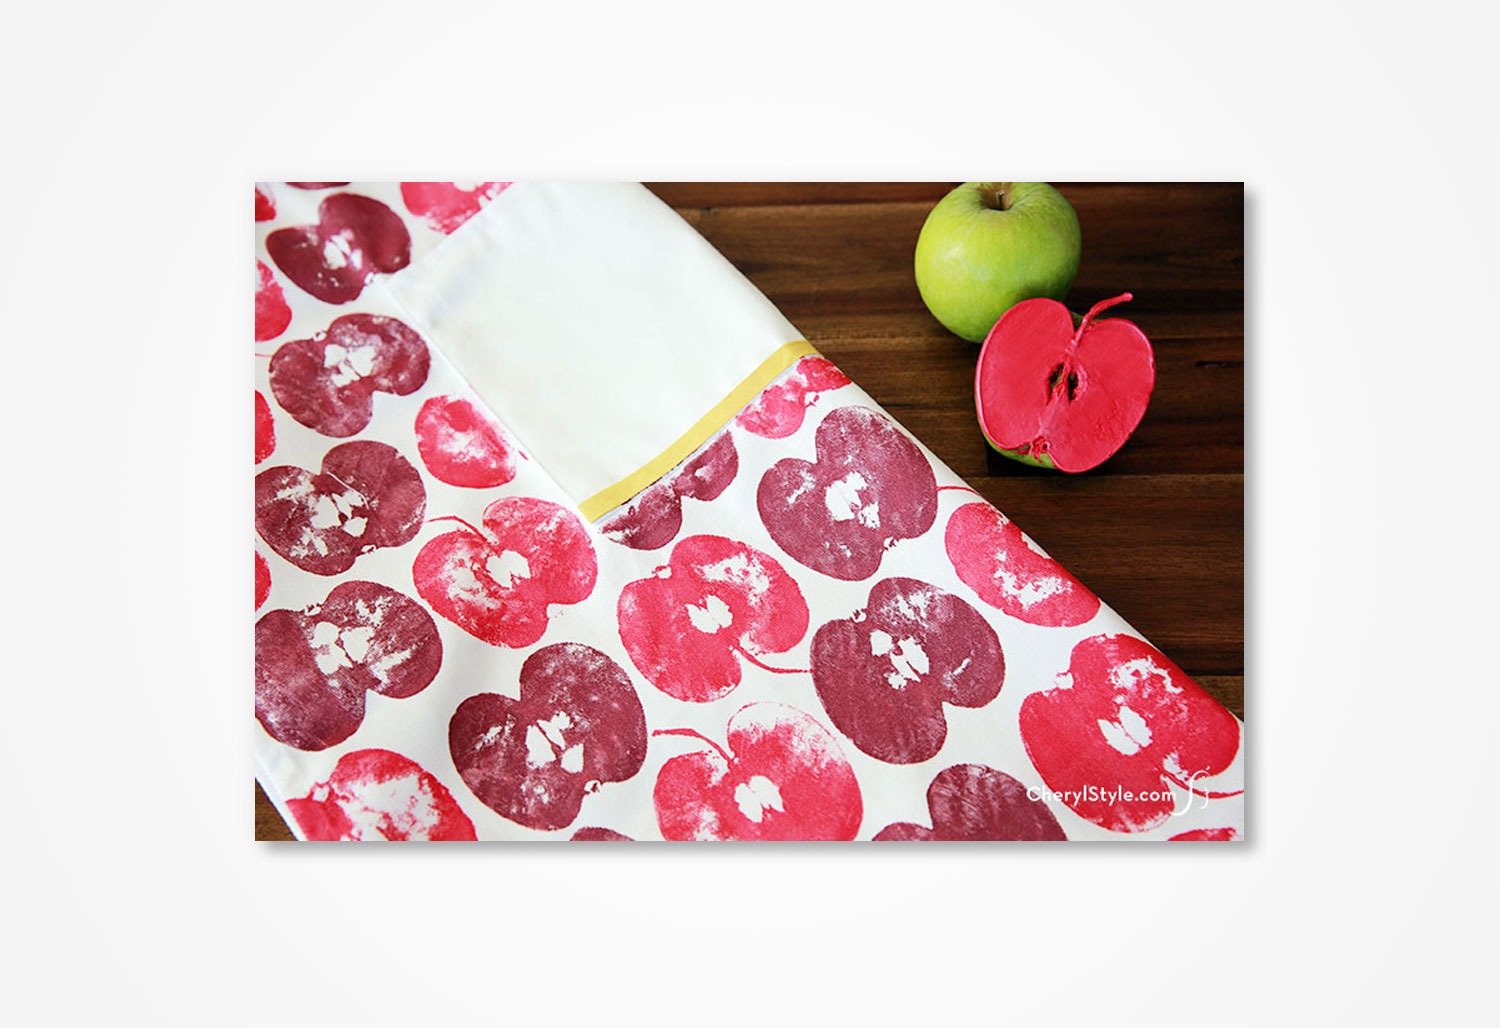 cs-apple-stamp-apron-2.jpg